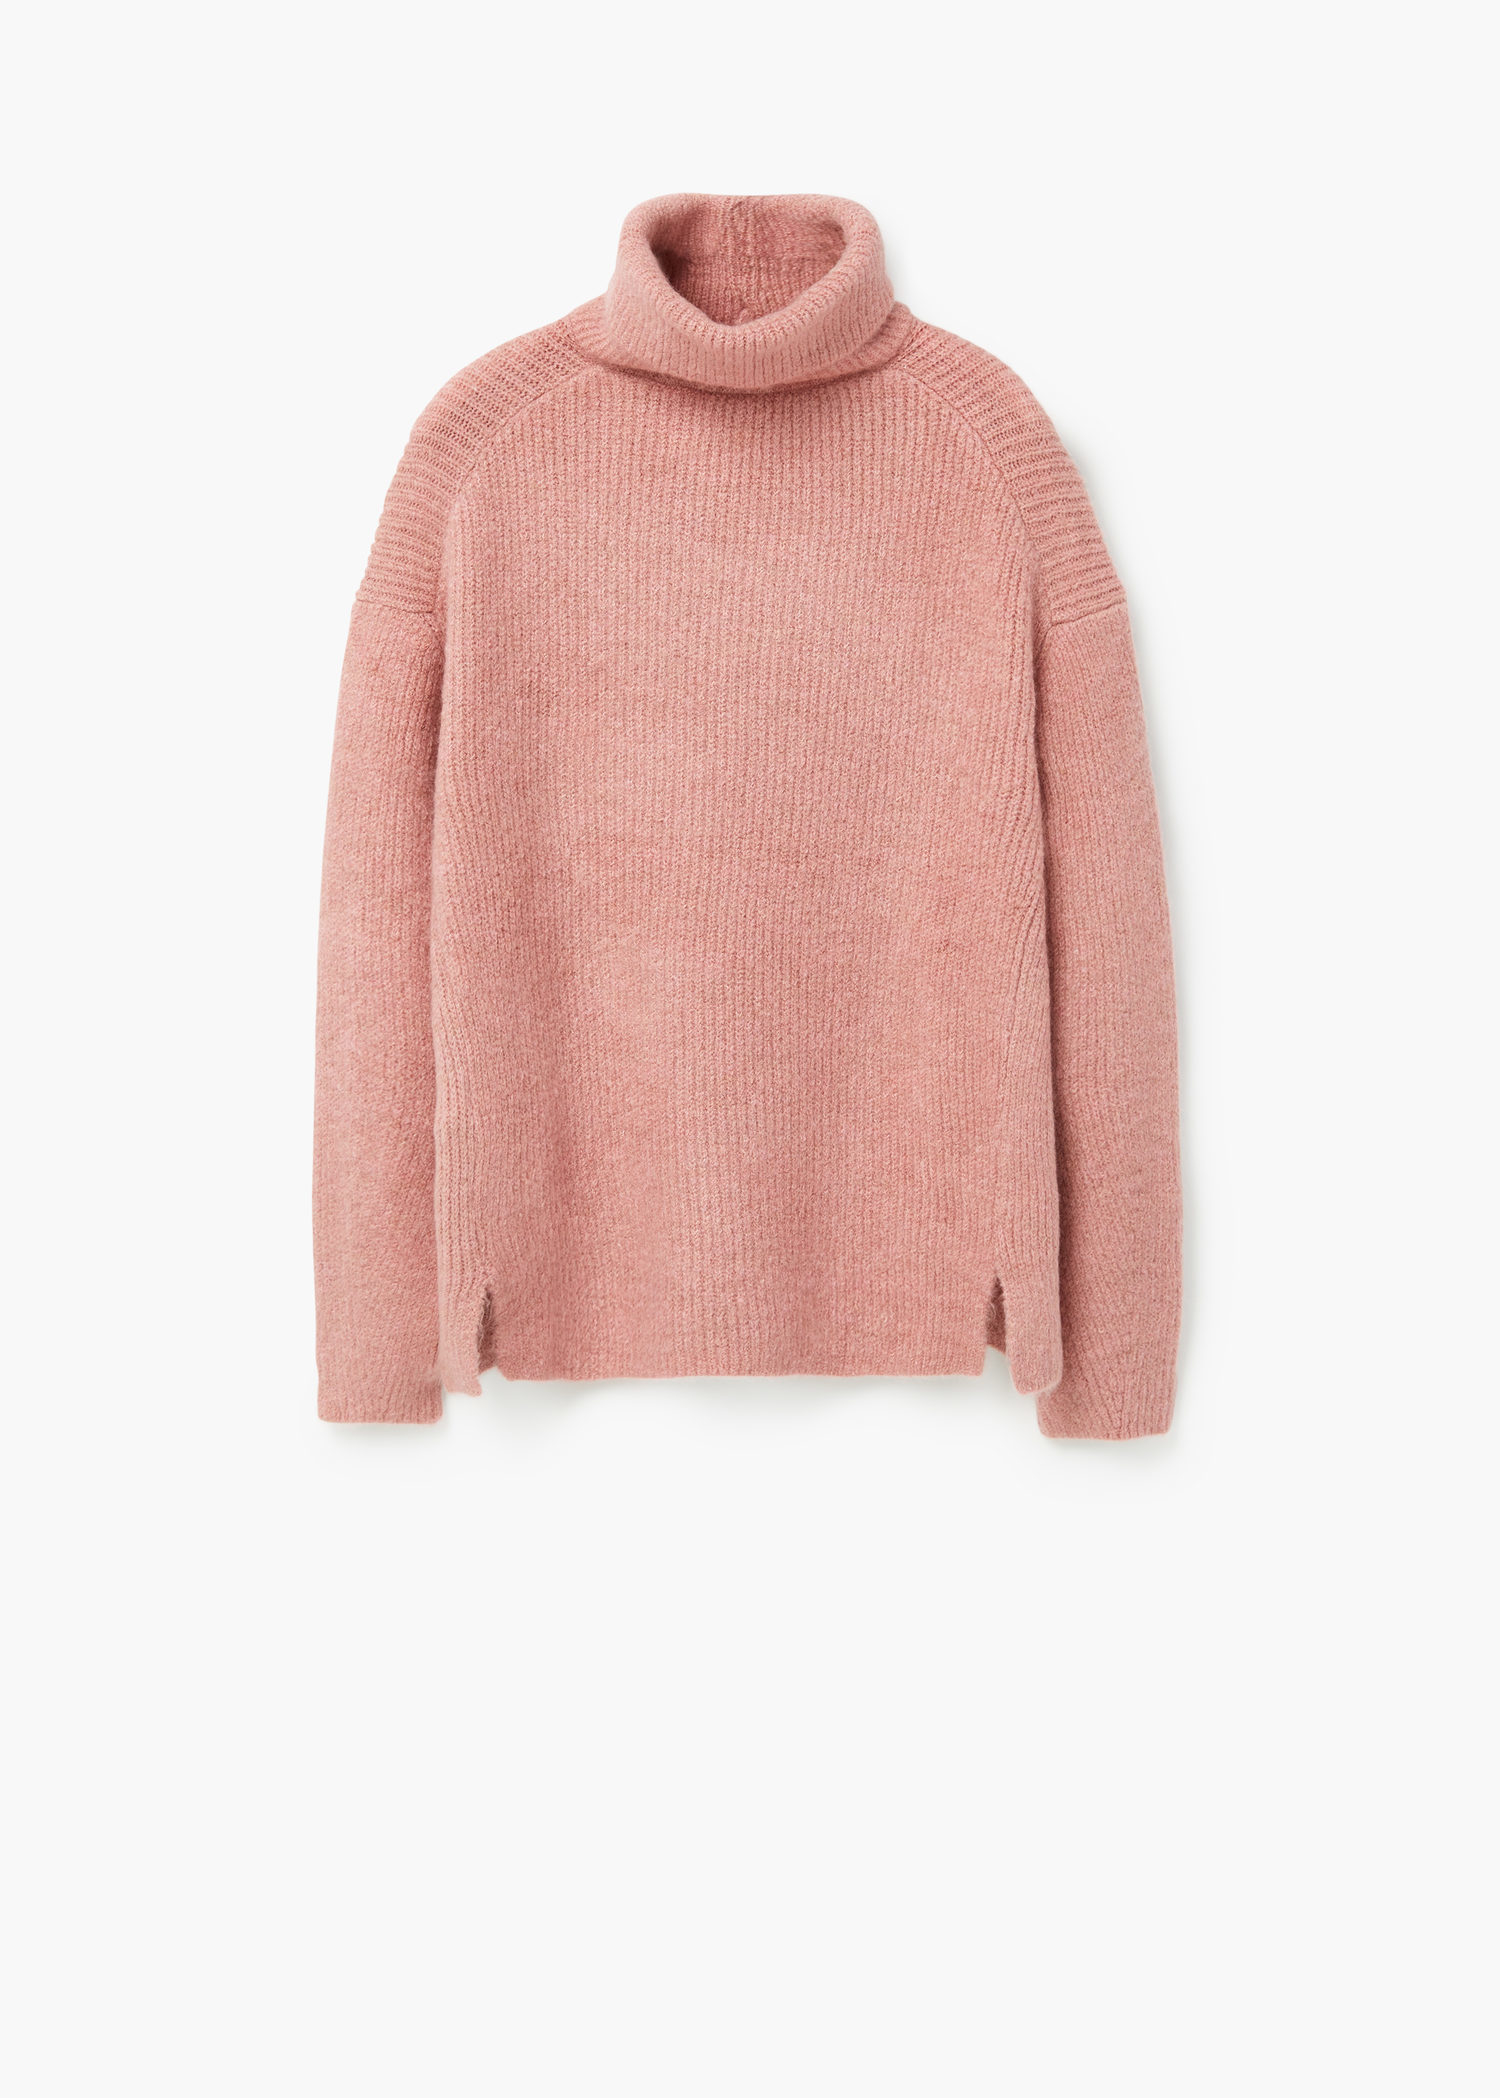 Mango Turtleneck Sweater in Pink | Lyst